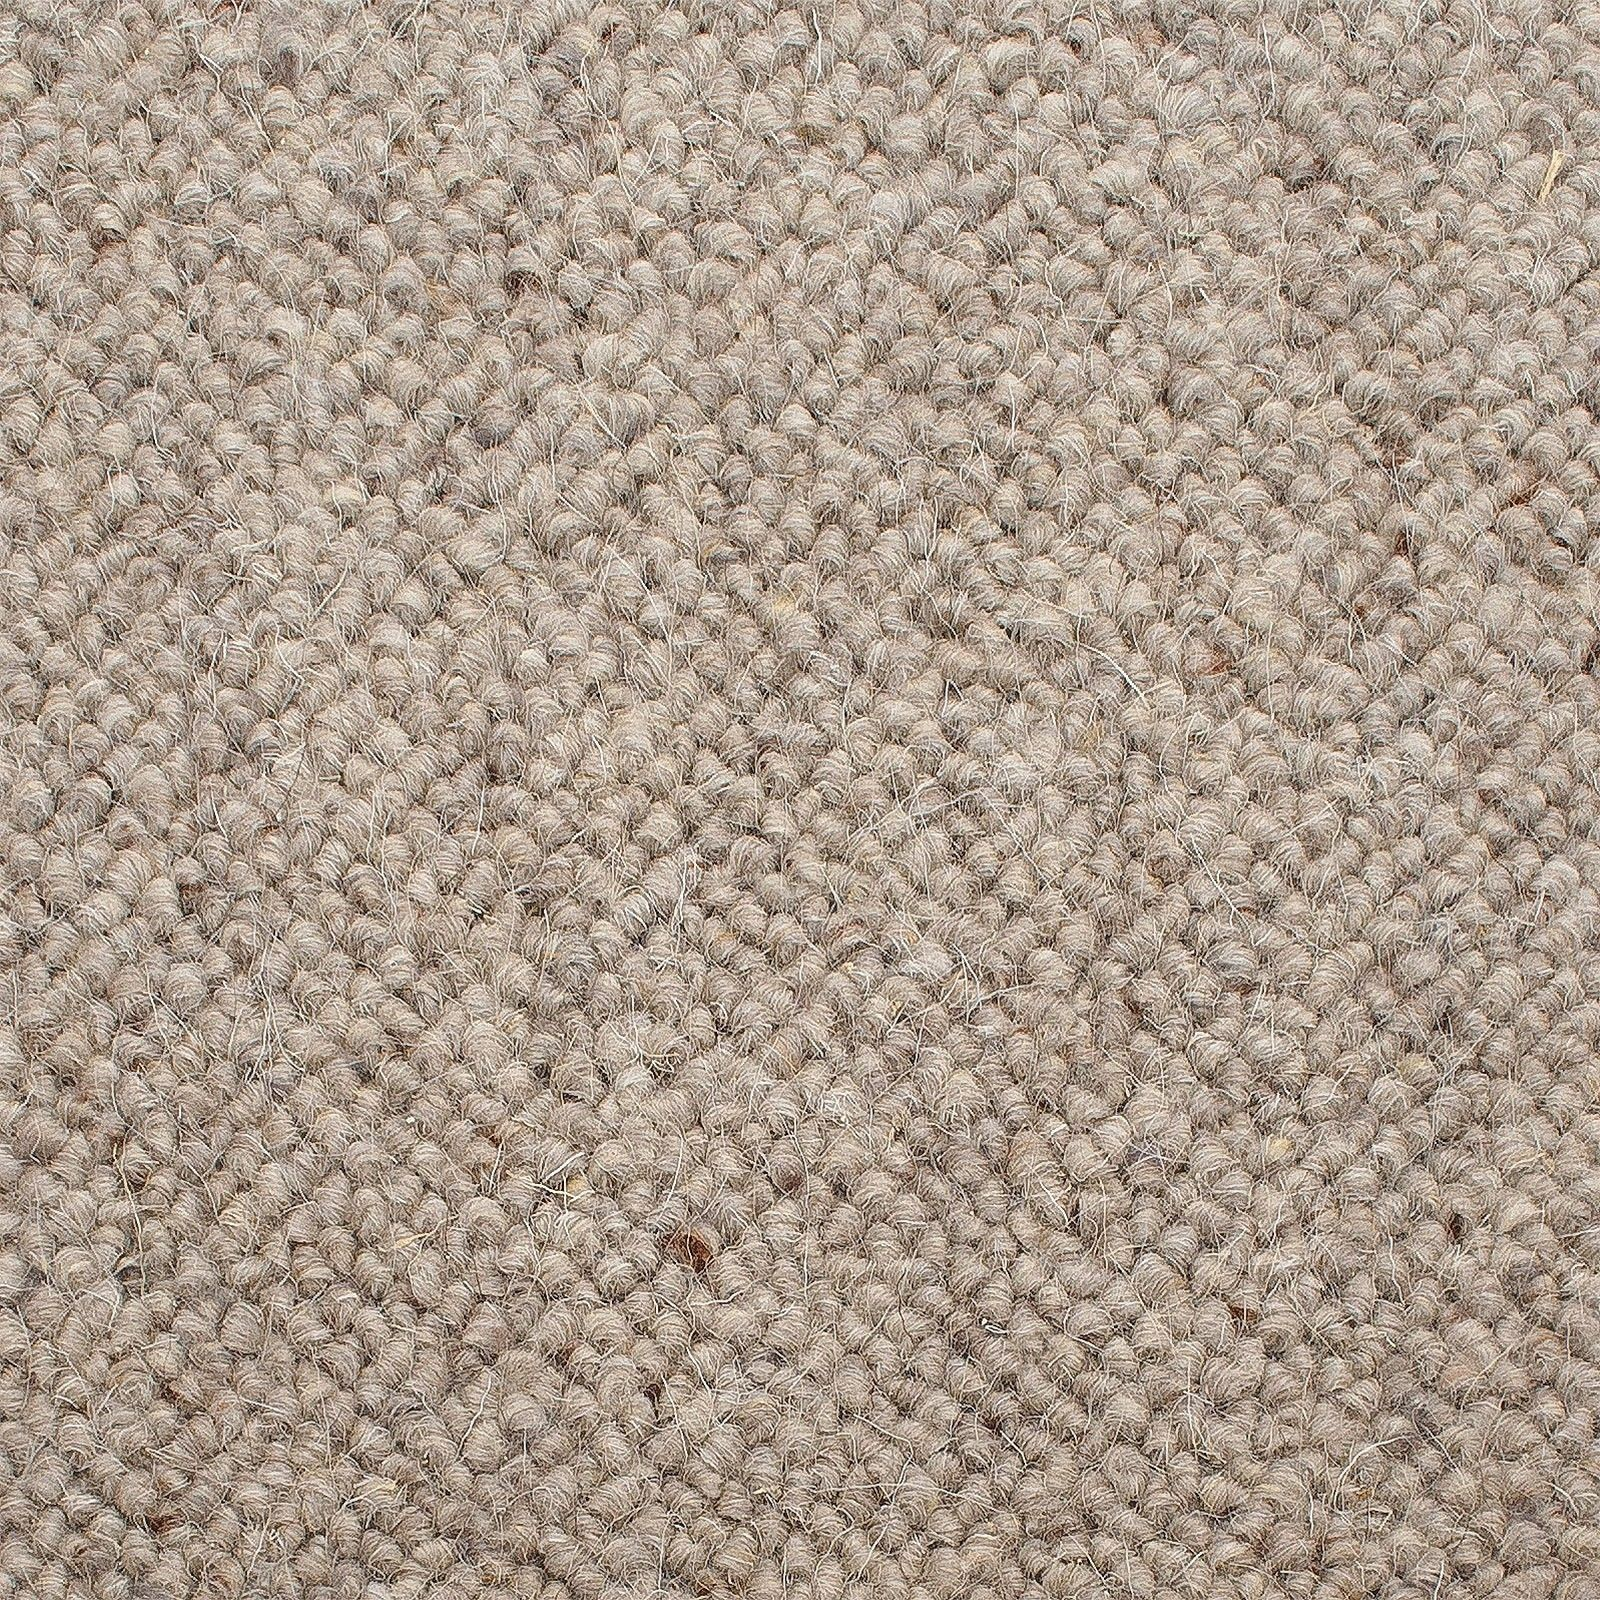 Corsa Berber 920 Ash Grey 100 Wool Carpet Flooring